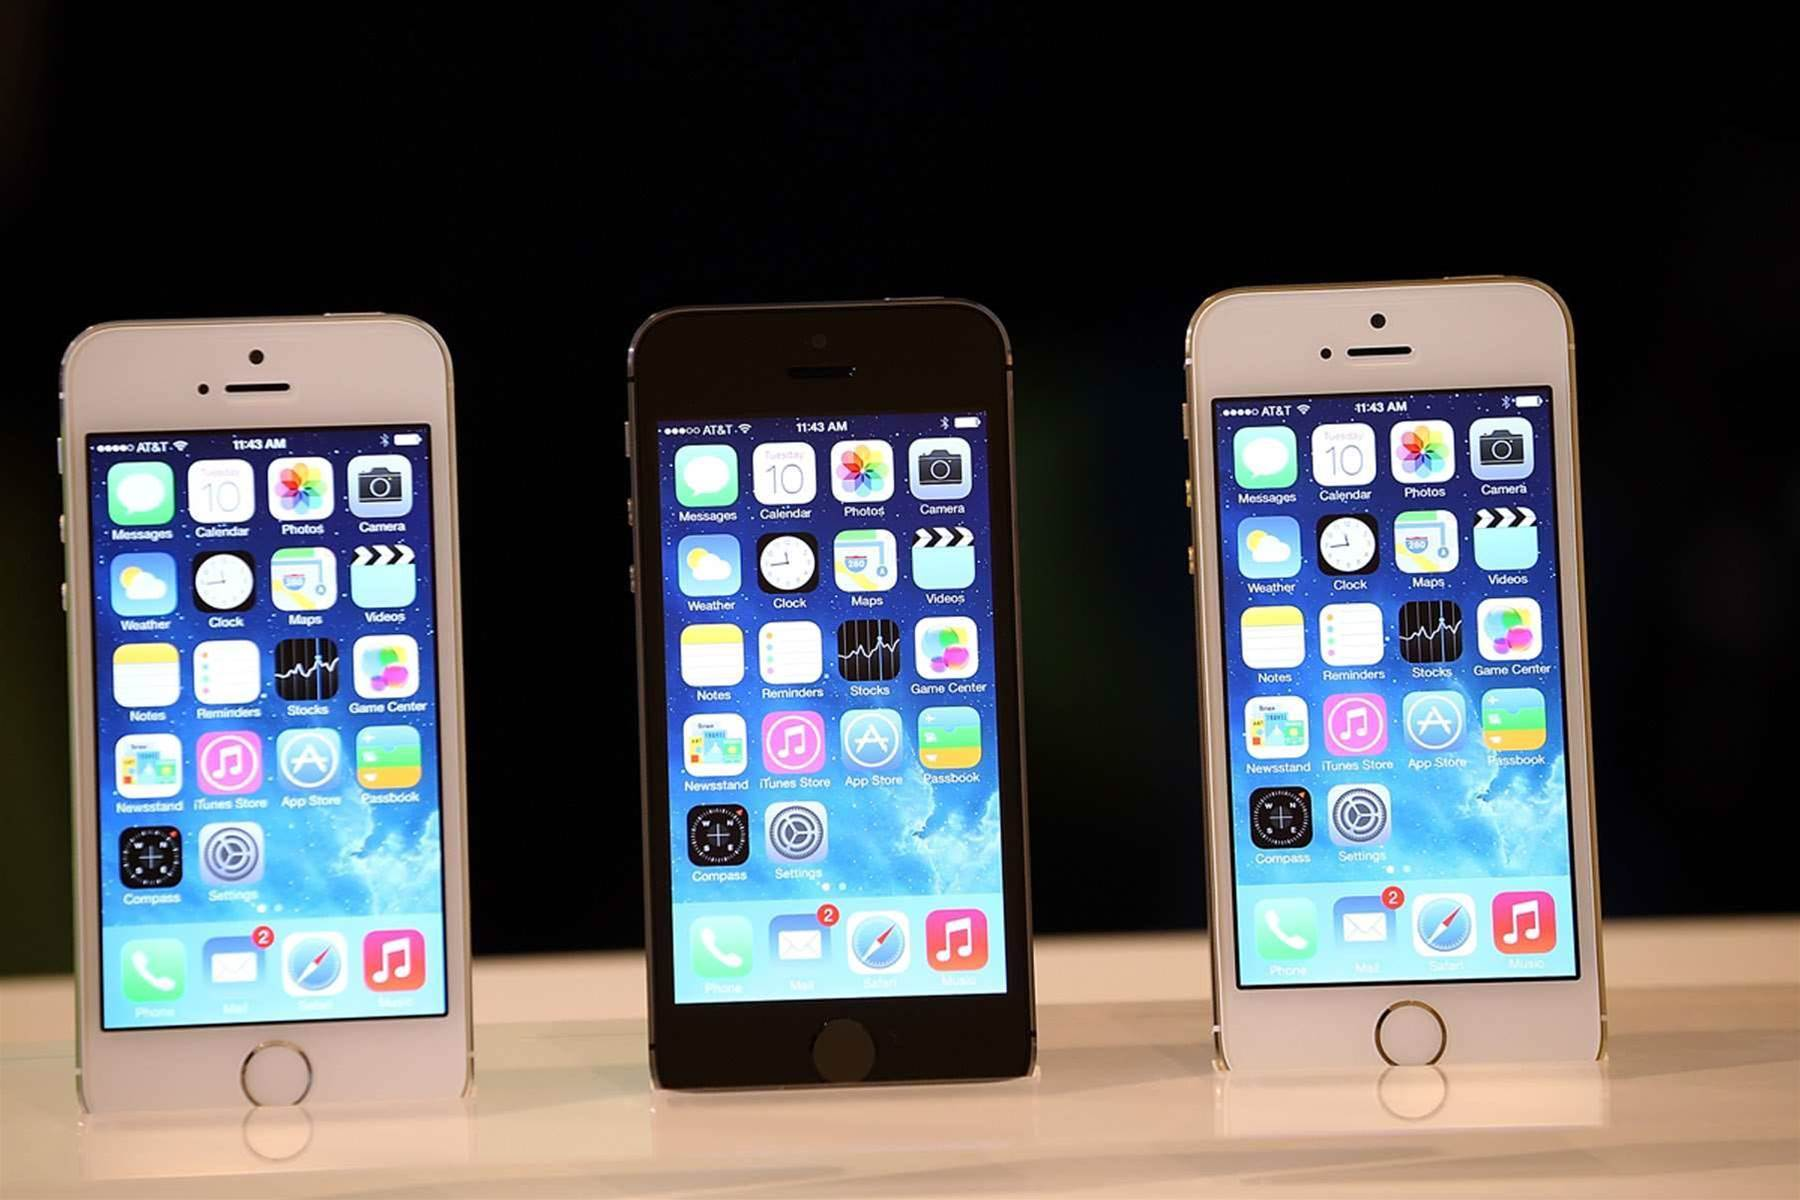 Australian prices, dates, features for Apple's new iPhone 5s and iPhone 5